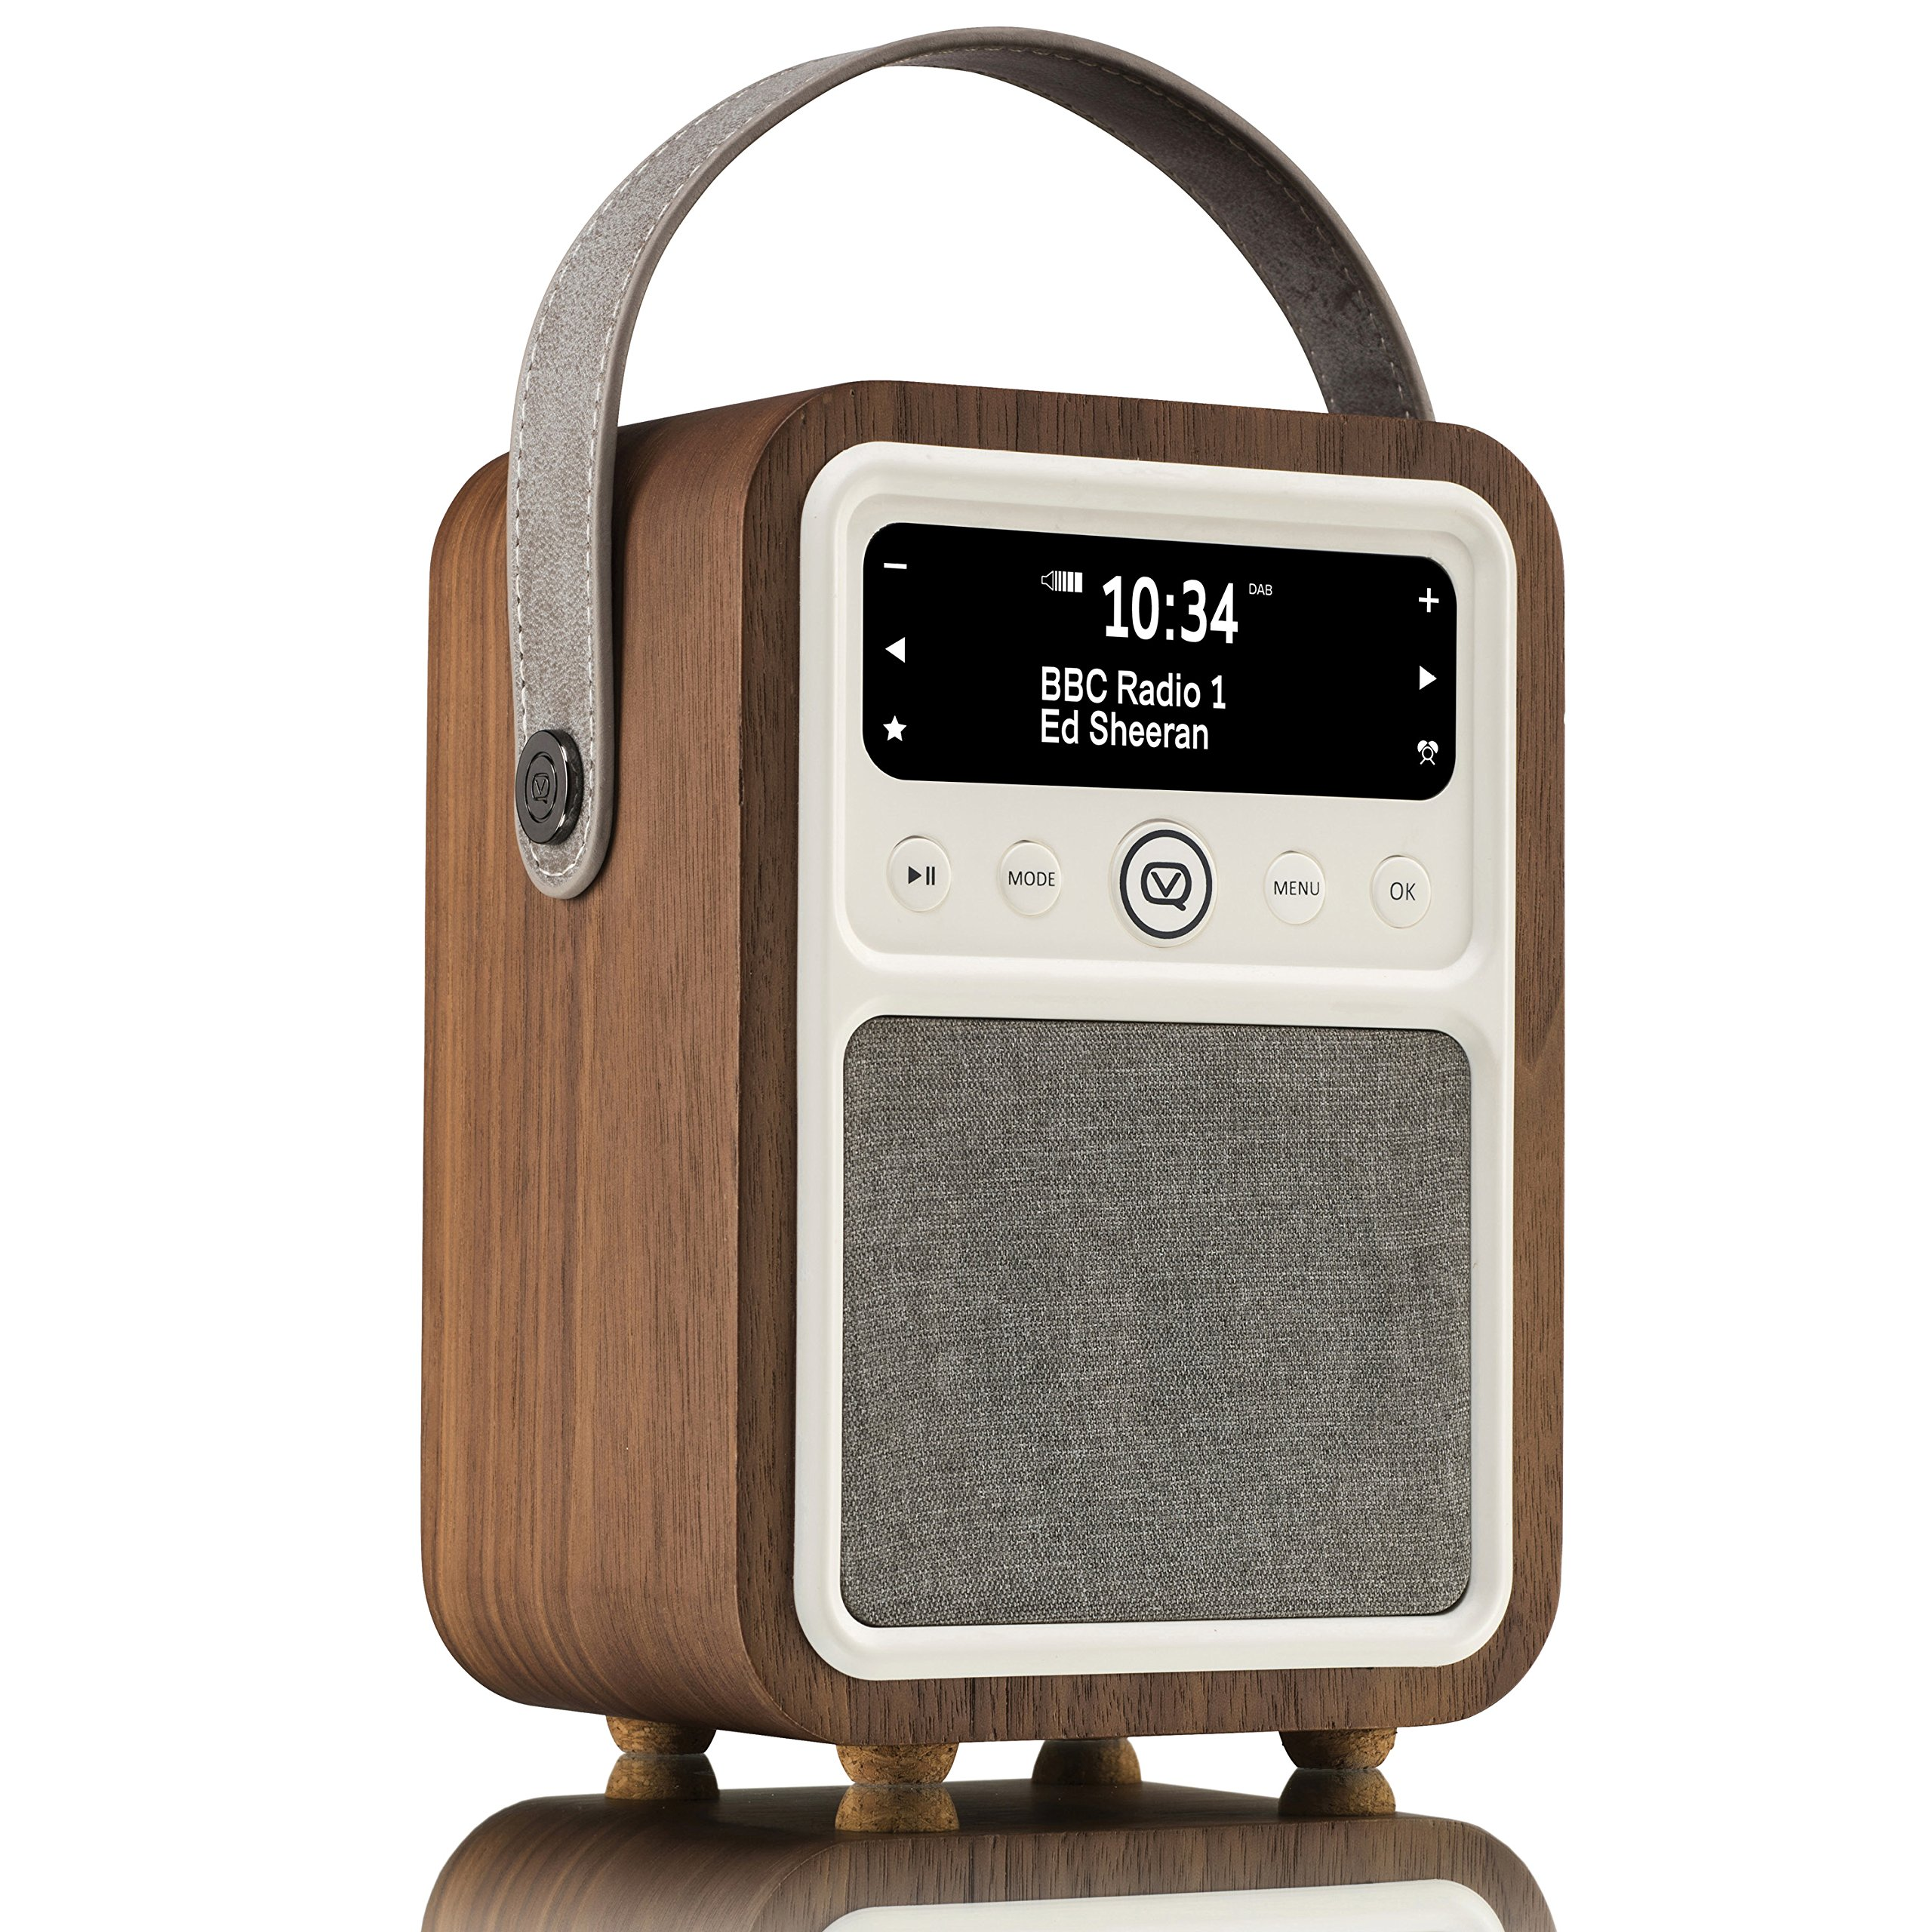 Monty by VQ | Radio & Bluetooth Speaker with AM/FM & HD Radio, Dual Alarm Clock, Mains or Battery – Real Wood Walnut Case by VQ